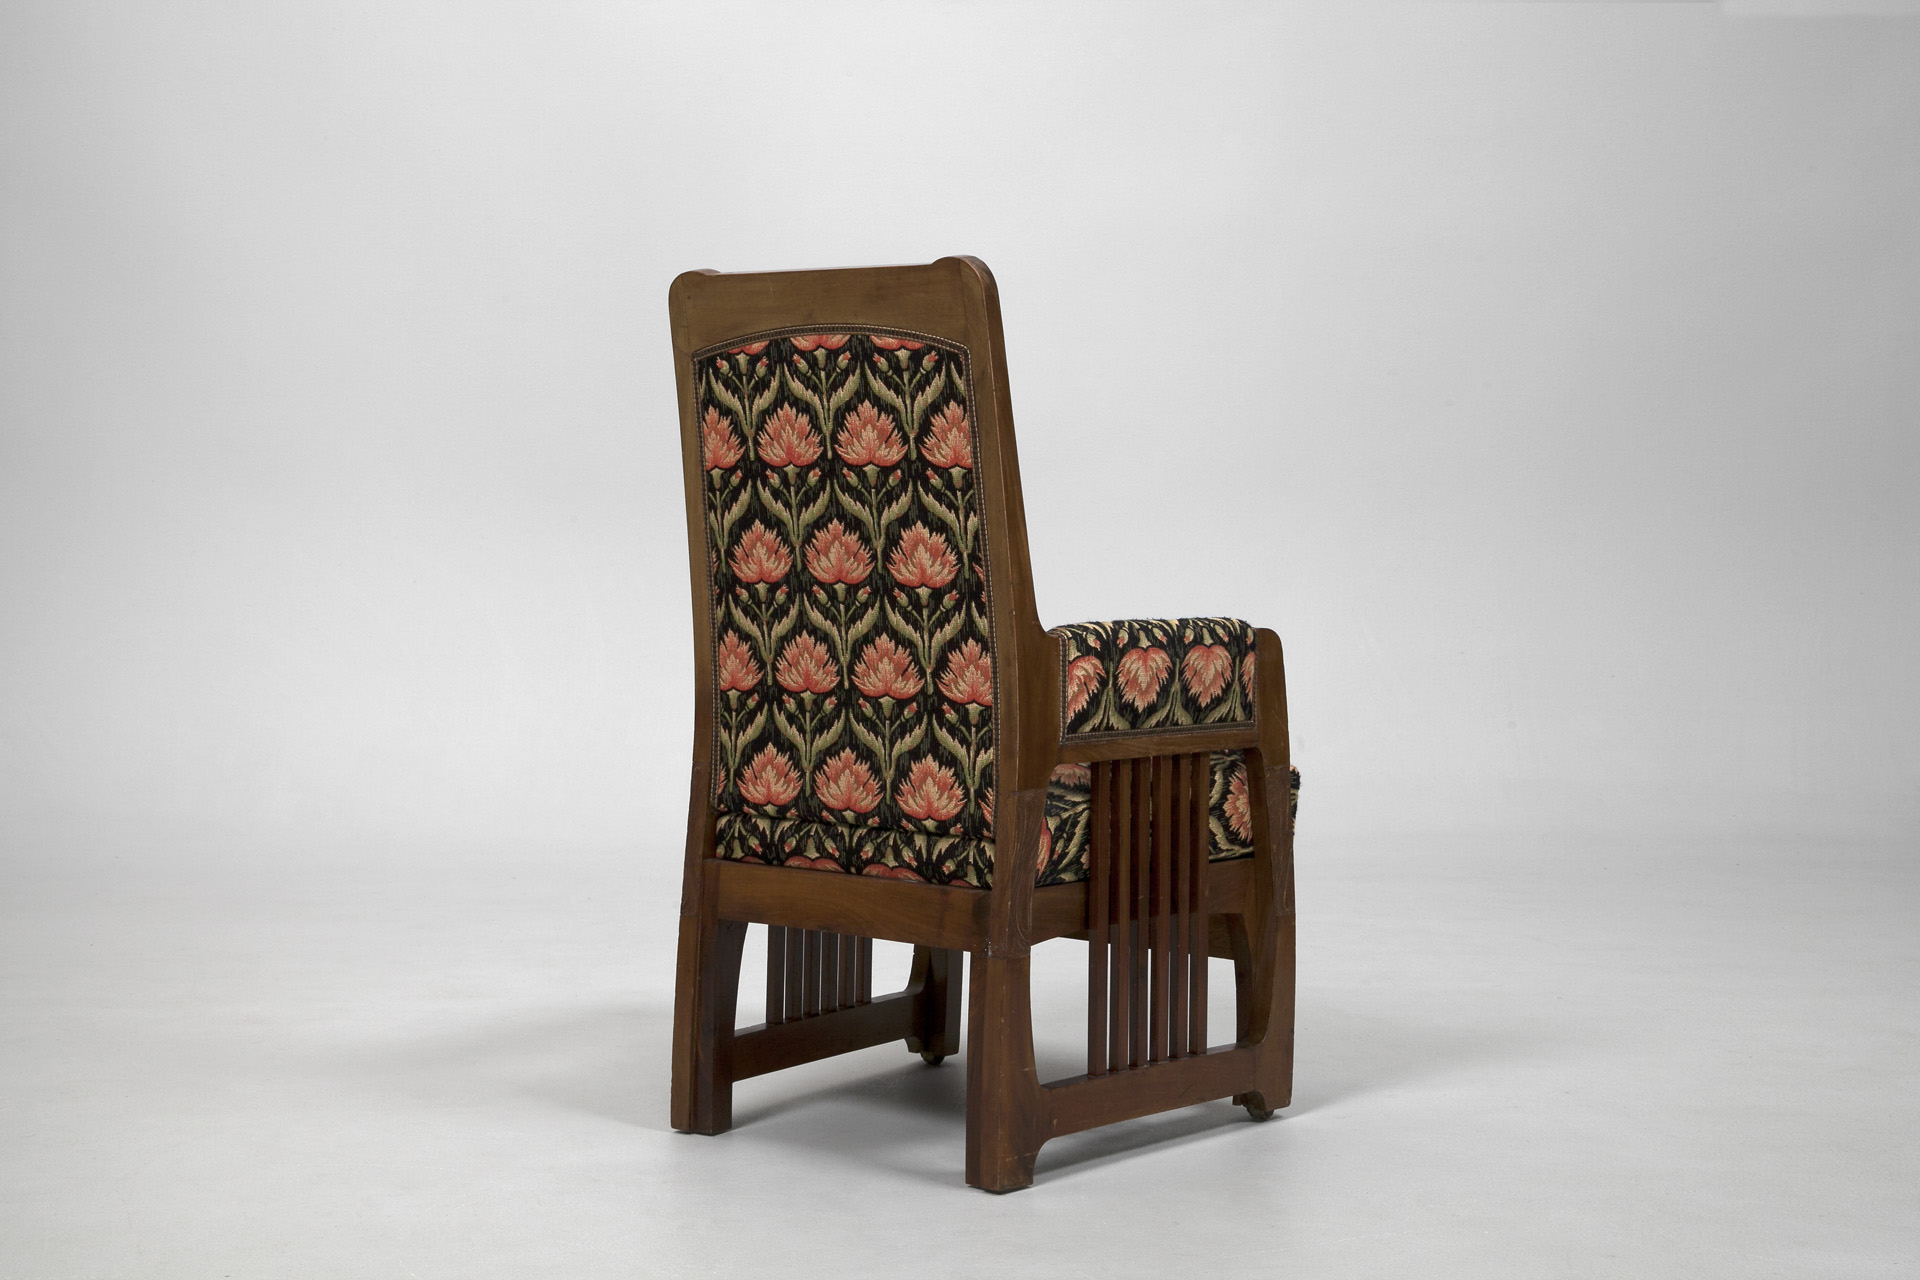 Jacksons Jugend Chair